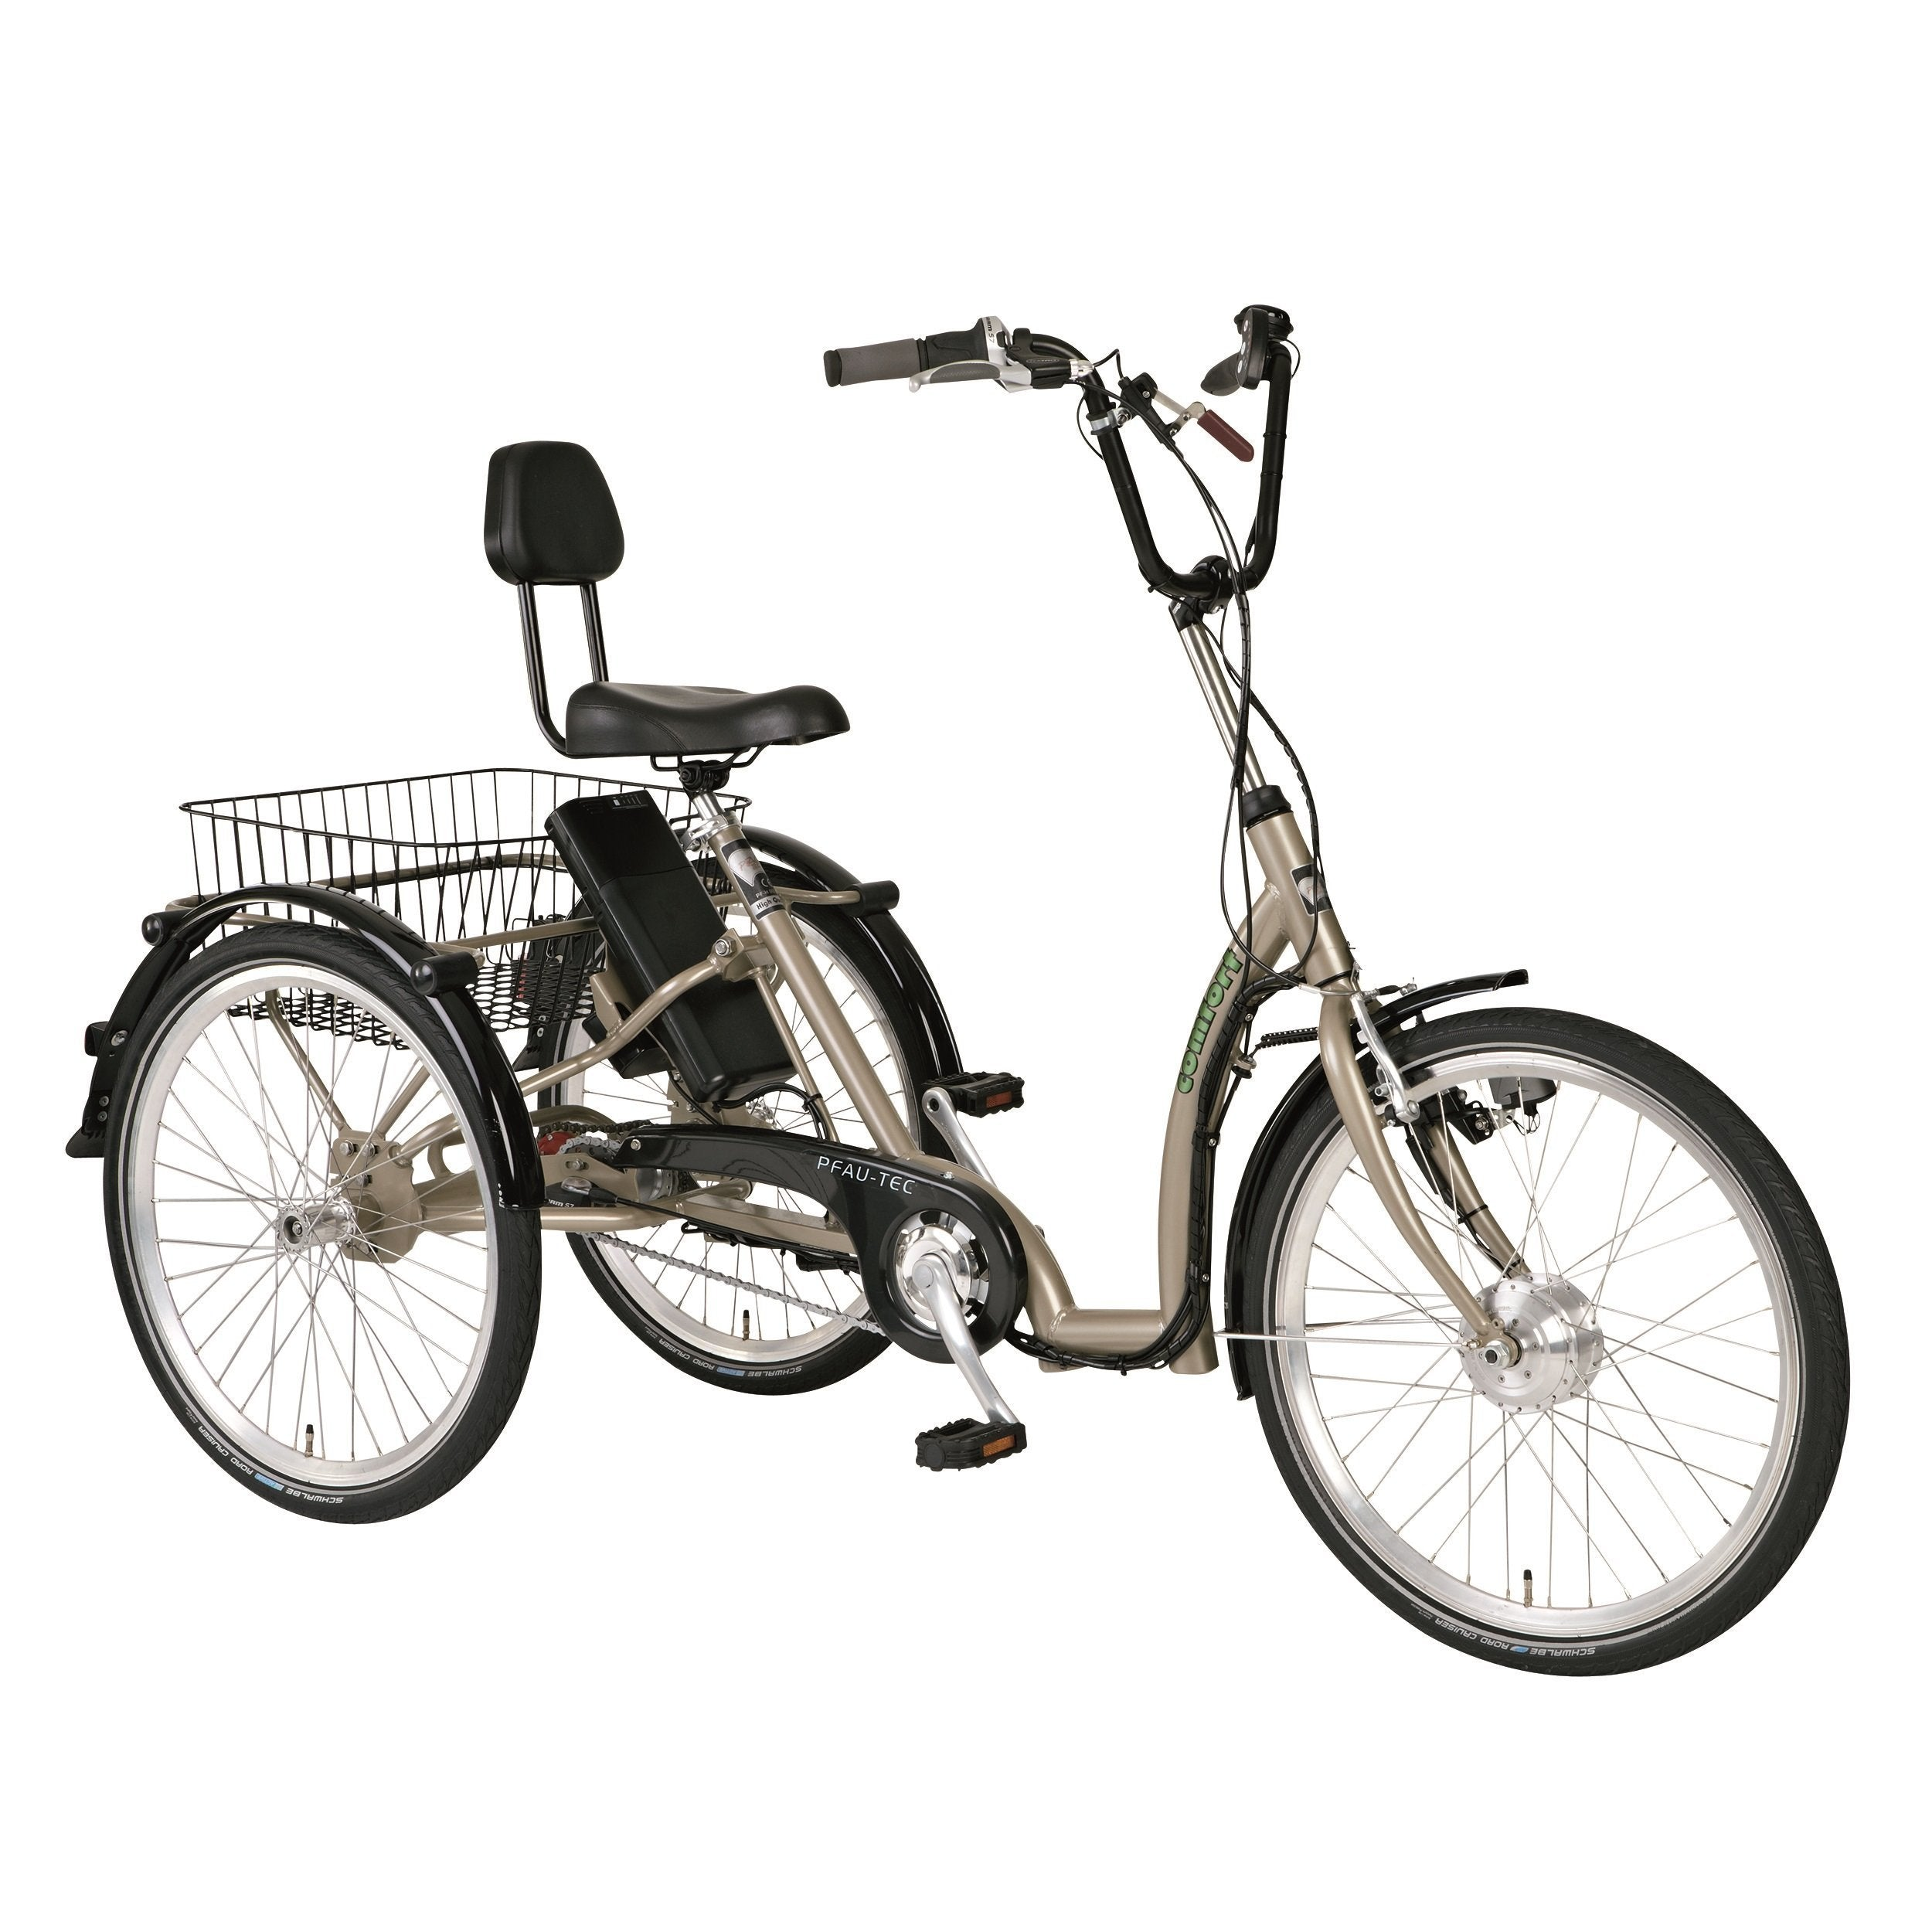 PFIFF Comfort 24 Inch 7-Speed Ansmann Electric Tricycle - Electric Trike Ridetique.com